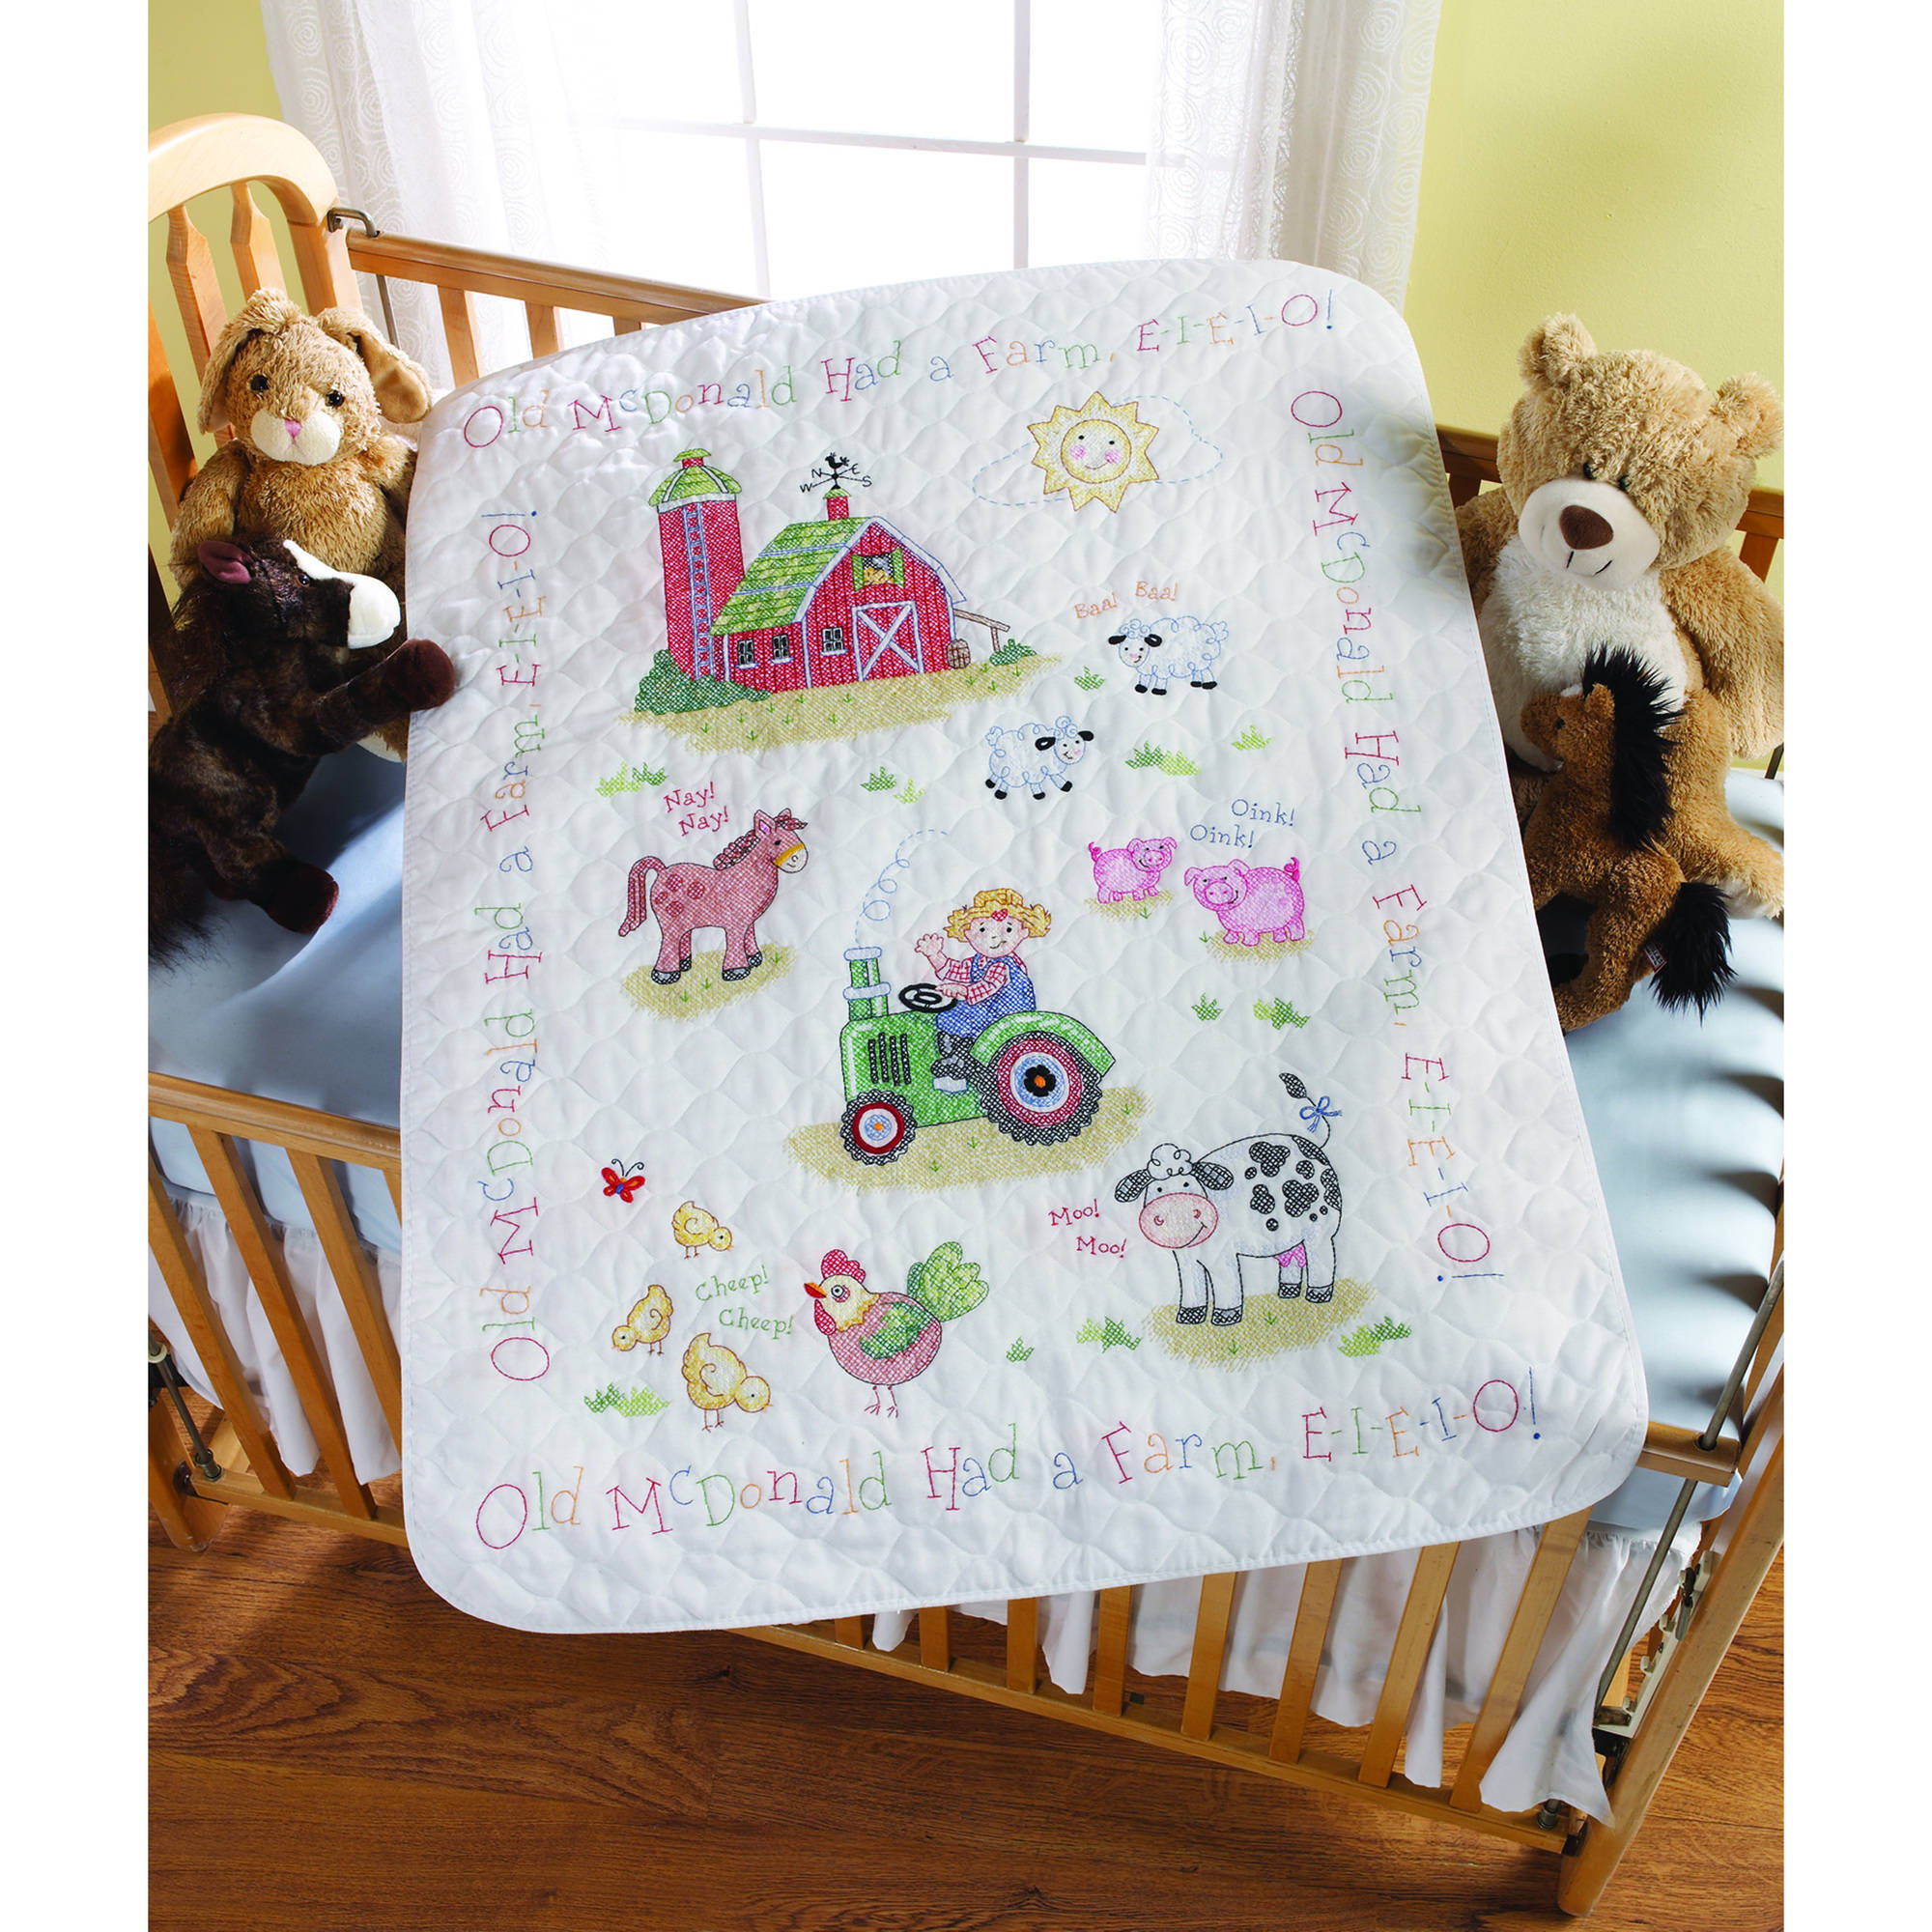 "Bucilla   Baby Stamped Cross Stitch Crib Cover Kit by Plaid, On the Farm, 34"" x   43"""